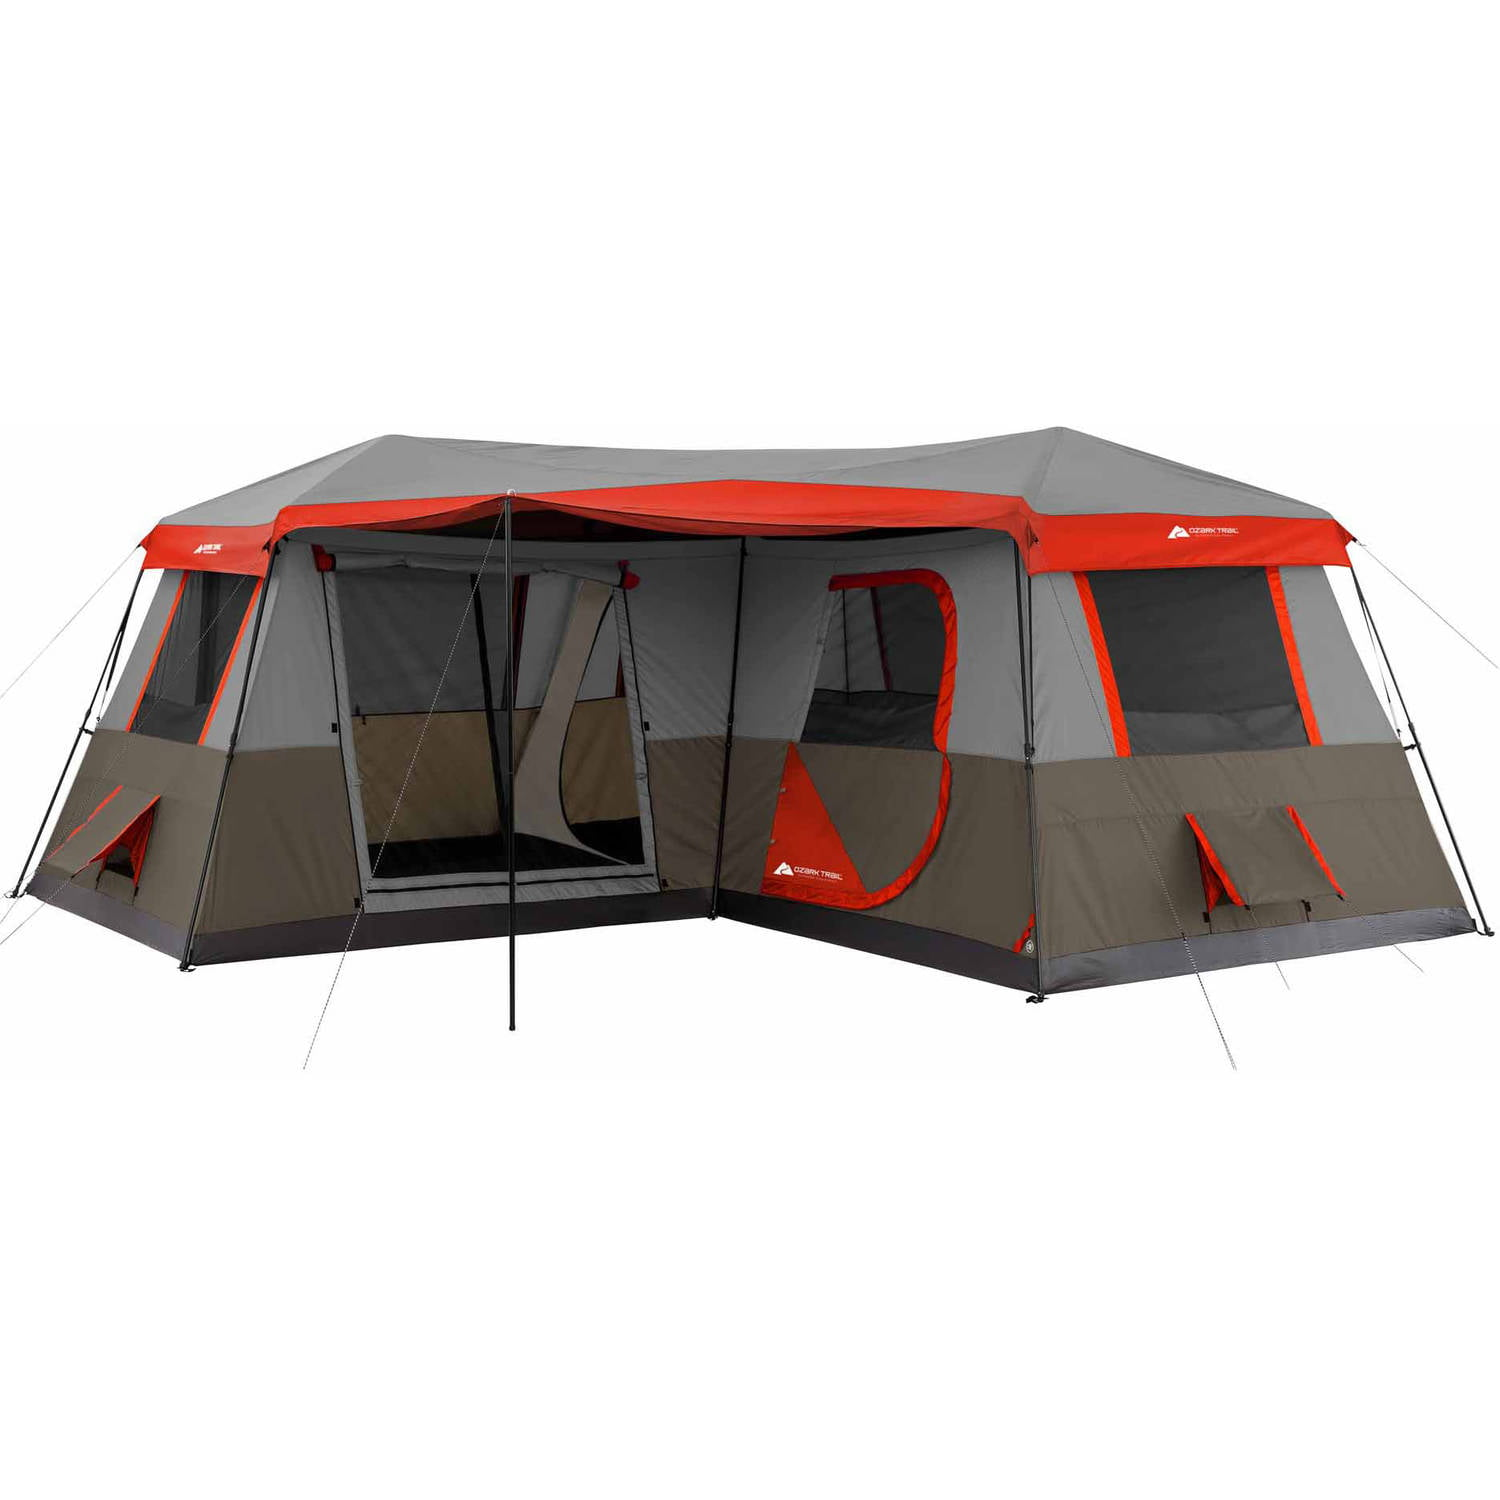 Ozark Trail 16x16 Instant Cabin Tent Sleeps 12 by Bohemian Travel Gear Limited